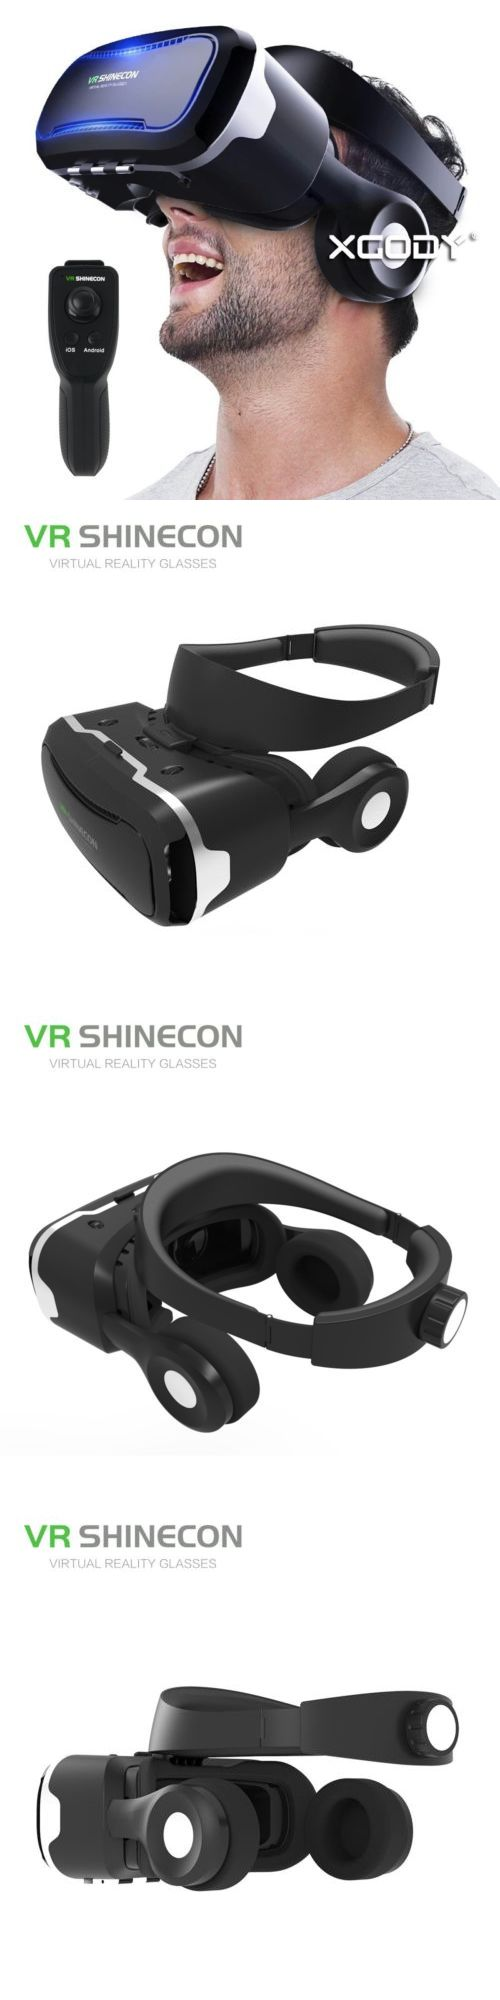 3D TV Glasses and Accessories: Vr Shinecon 4.0 Virtual Reality Headset For Smartphone With Gamepad And Earphone -> BUY IT NOW ONLY: $32.22 on eBay!